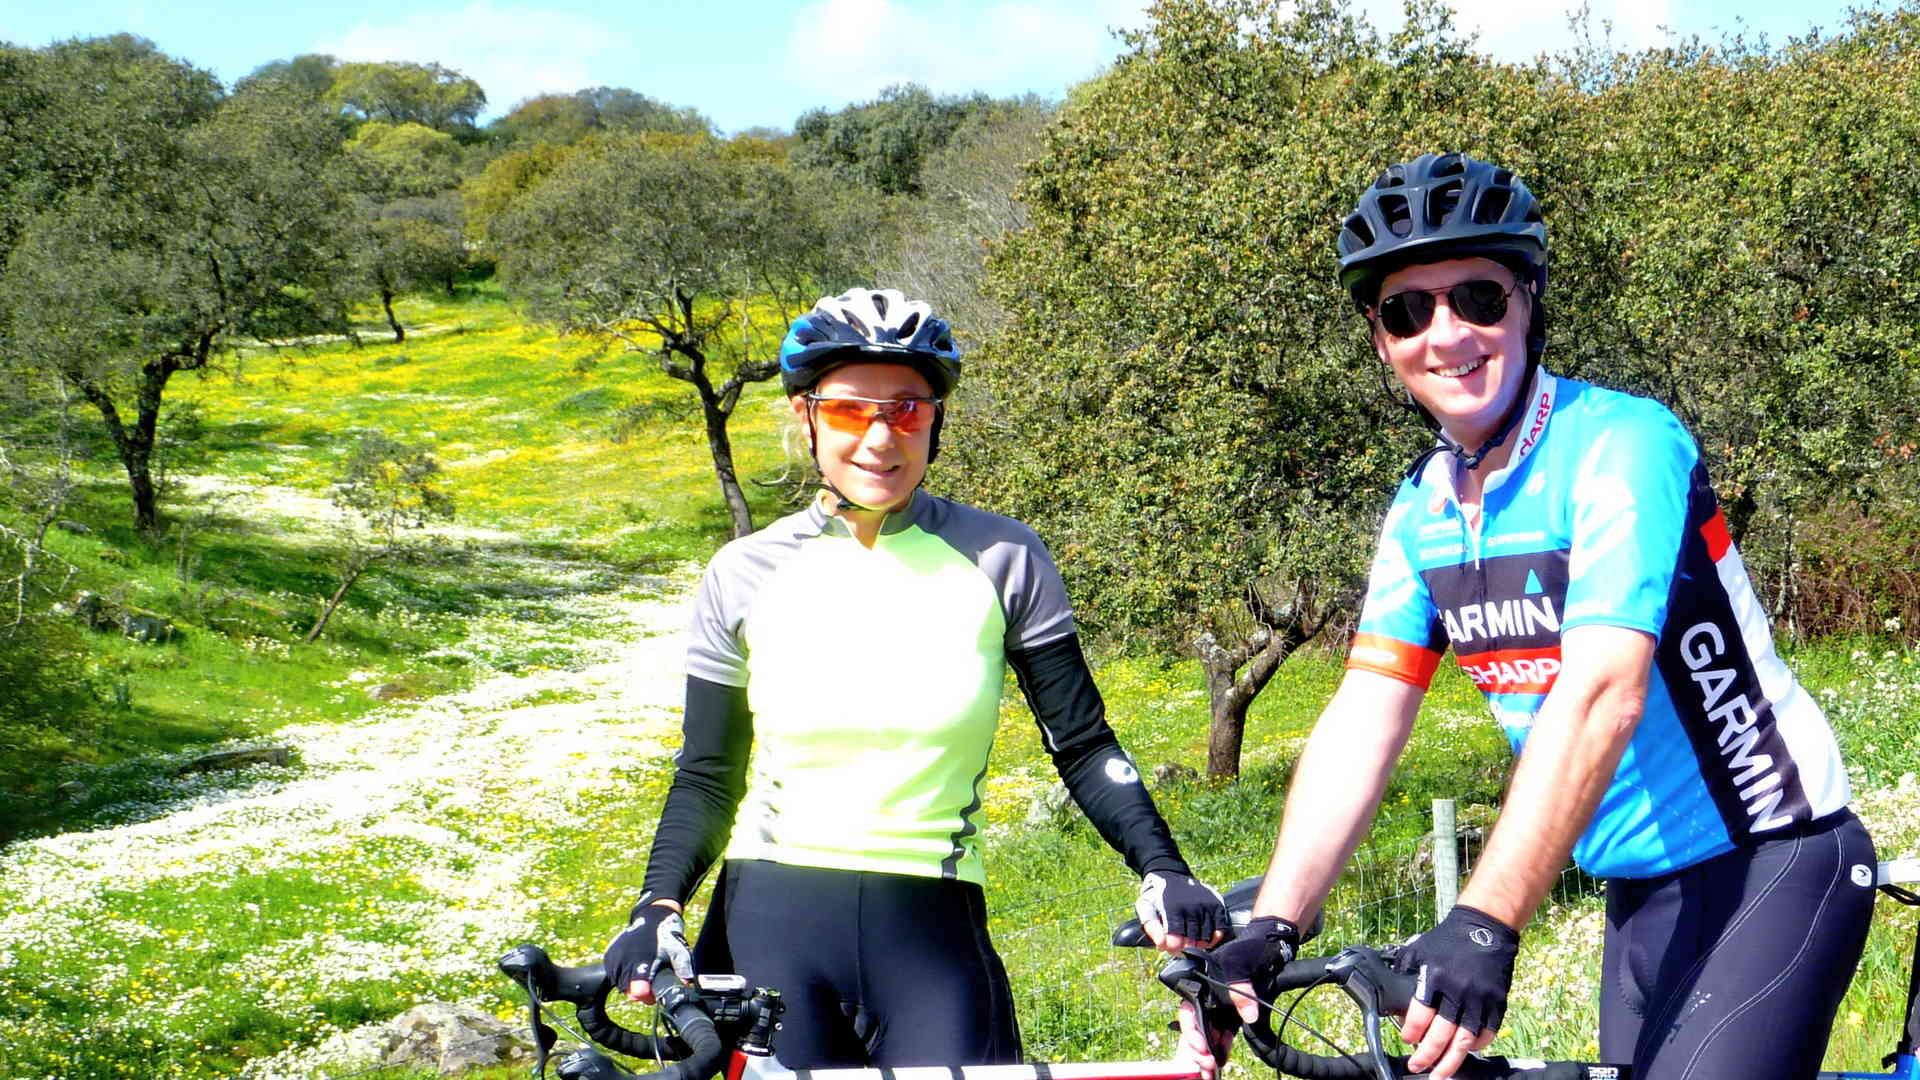 Bike tour in Portugal, Go cycling in Portugal